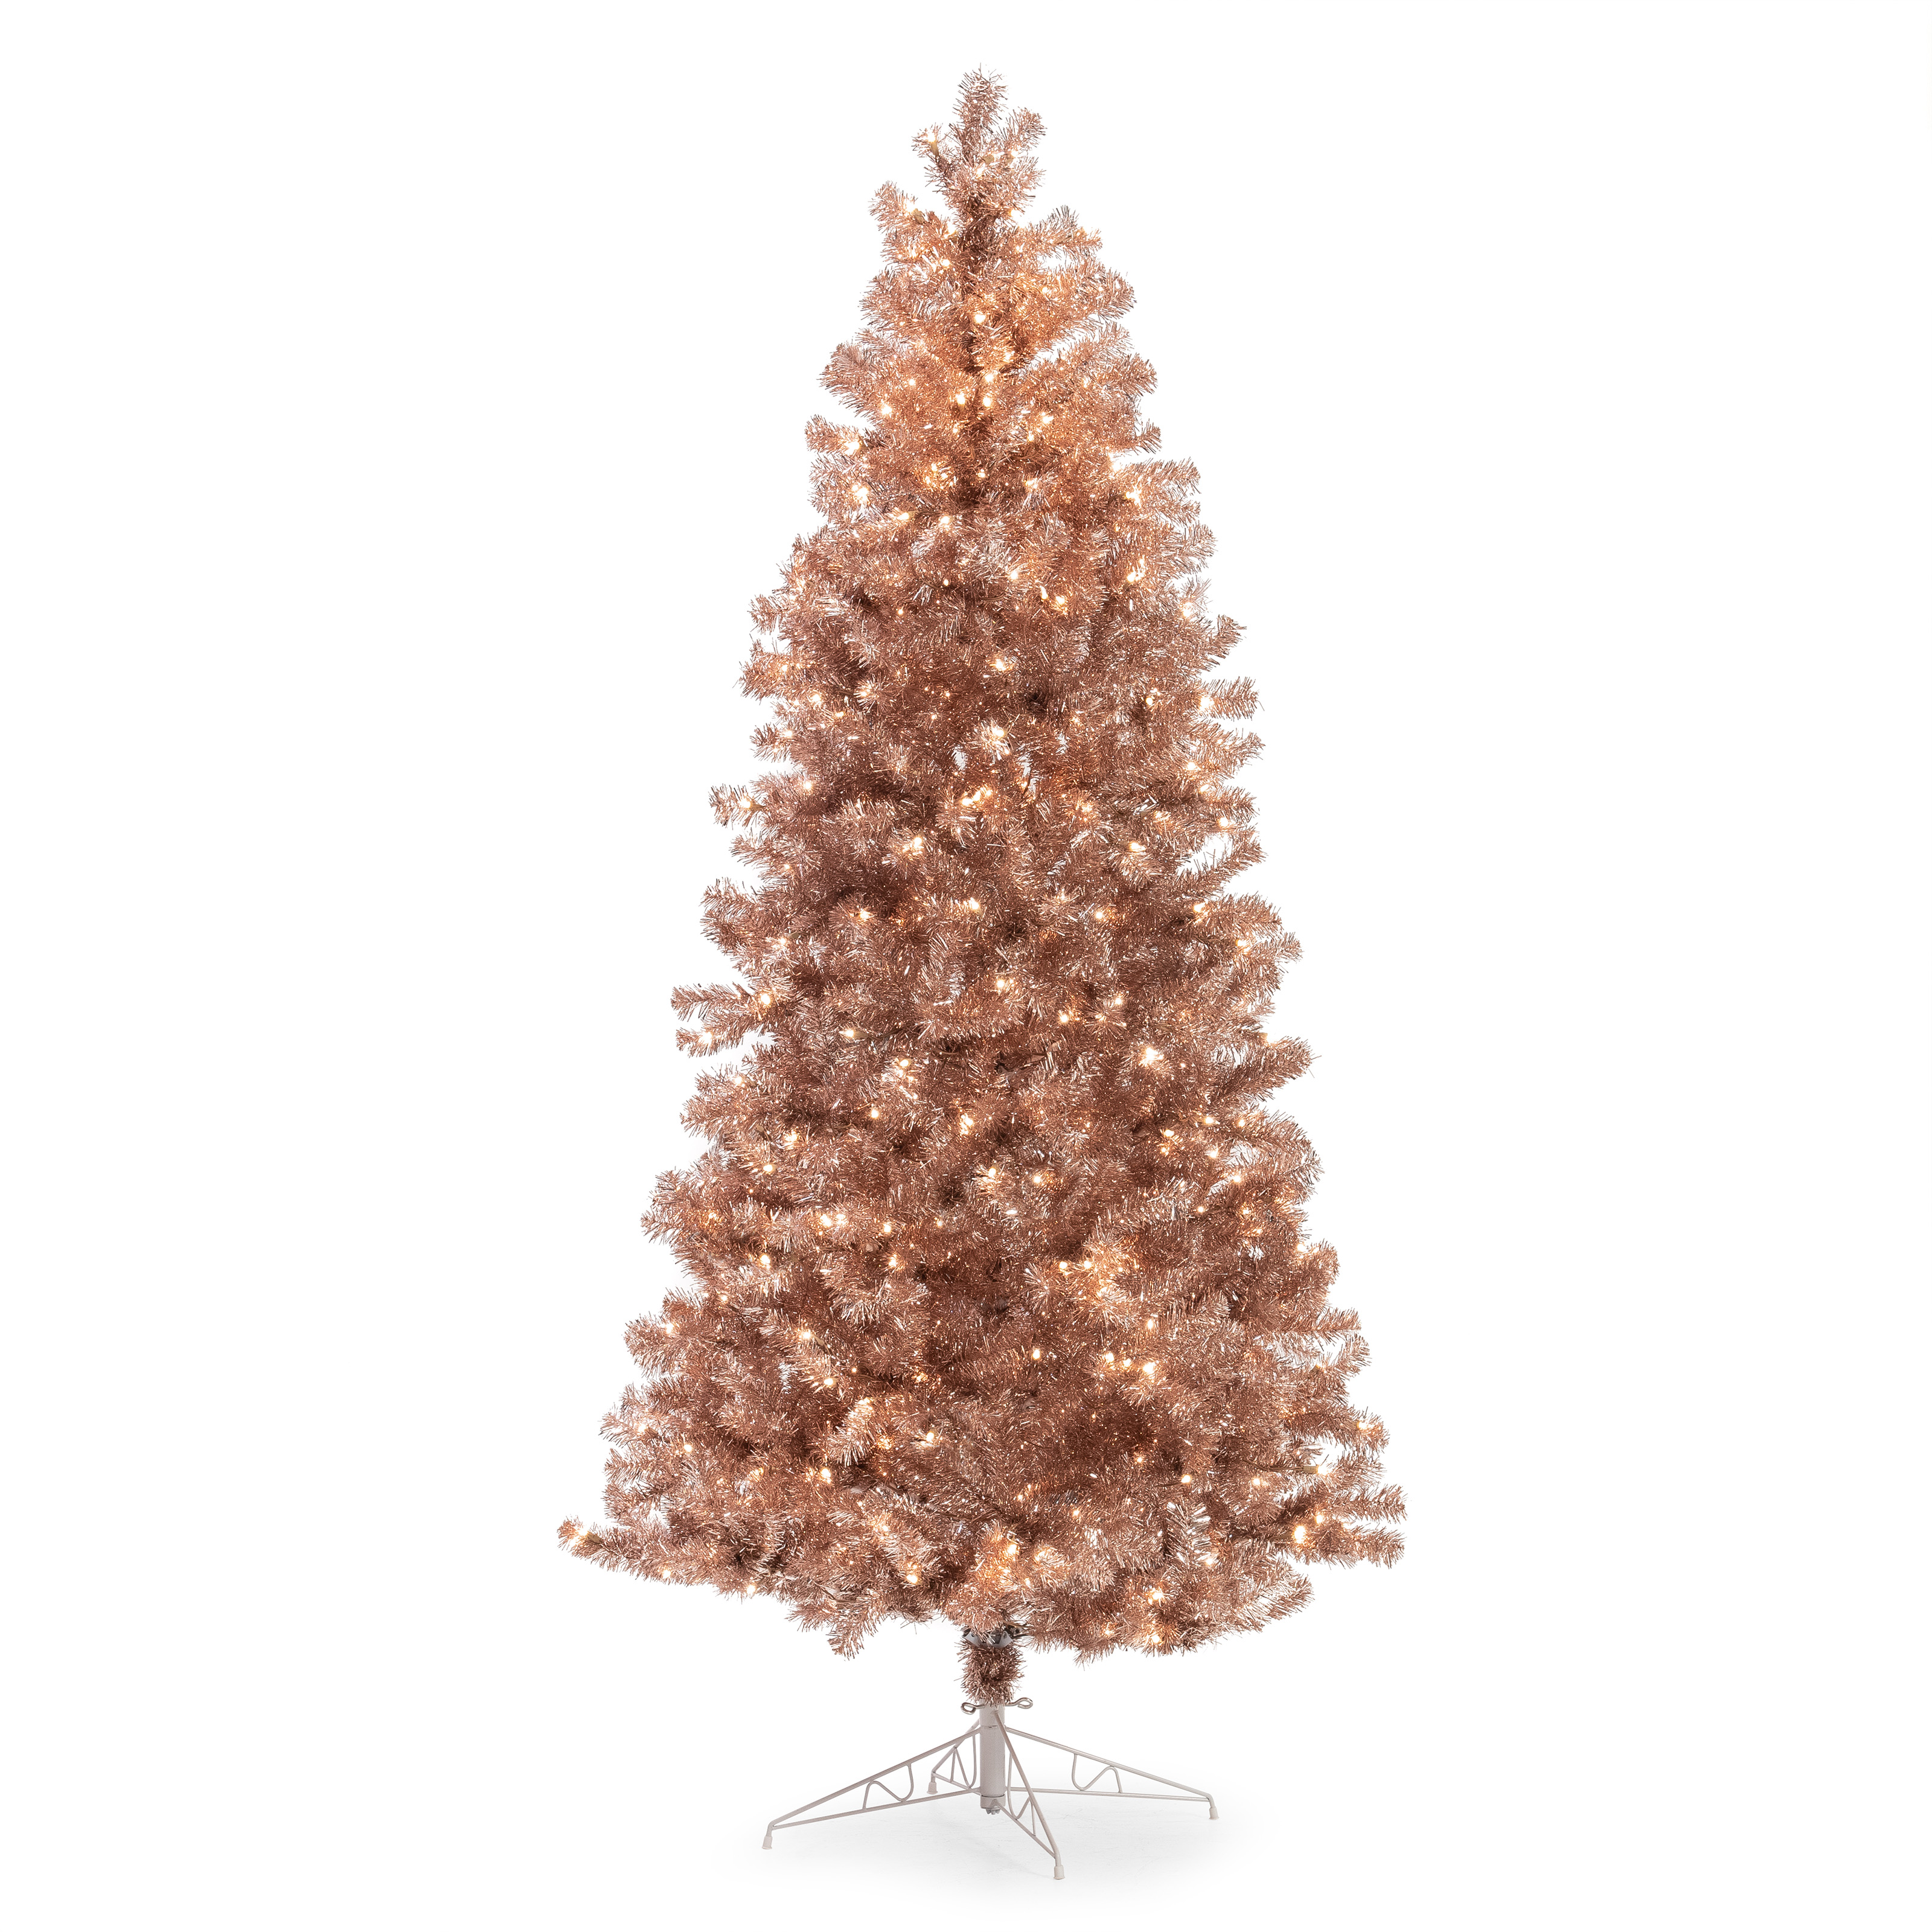 7 Rose Gold Christmas Trees And Where To Buy Apartment Therapy